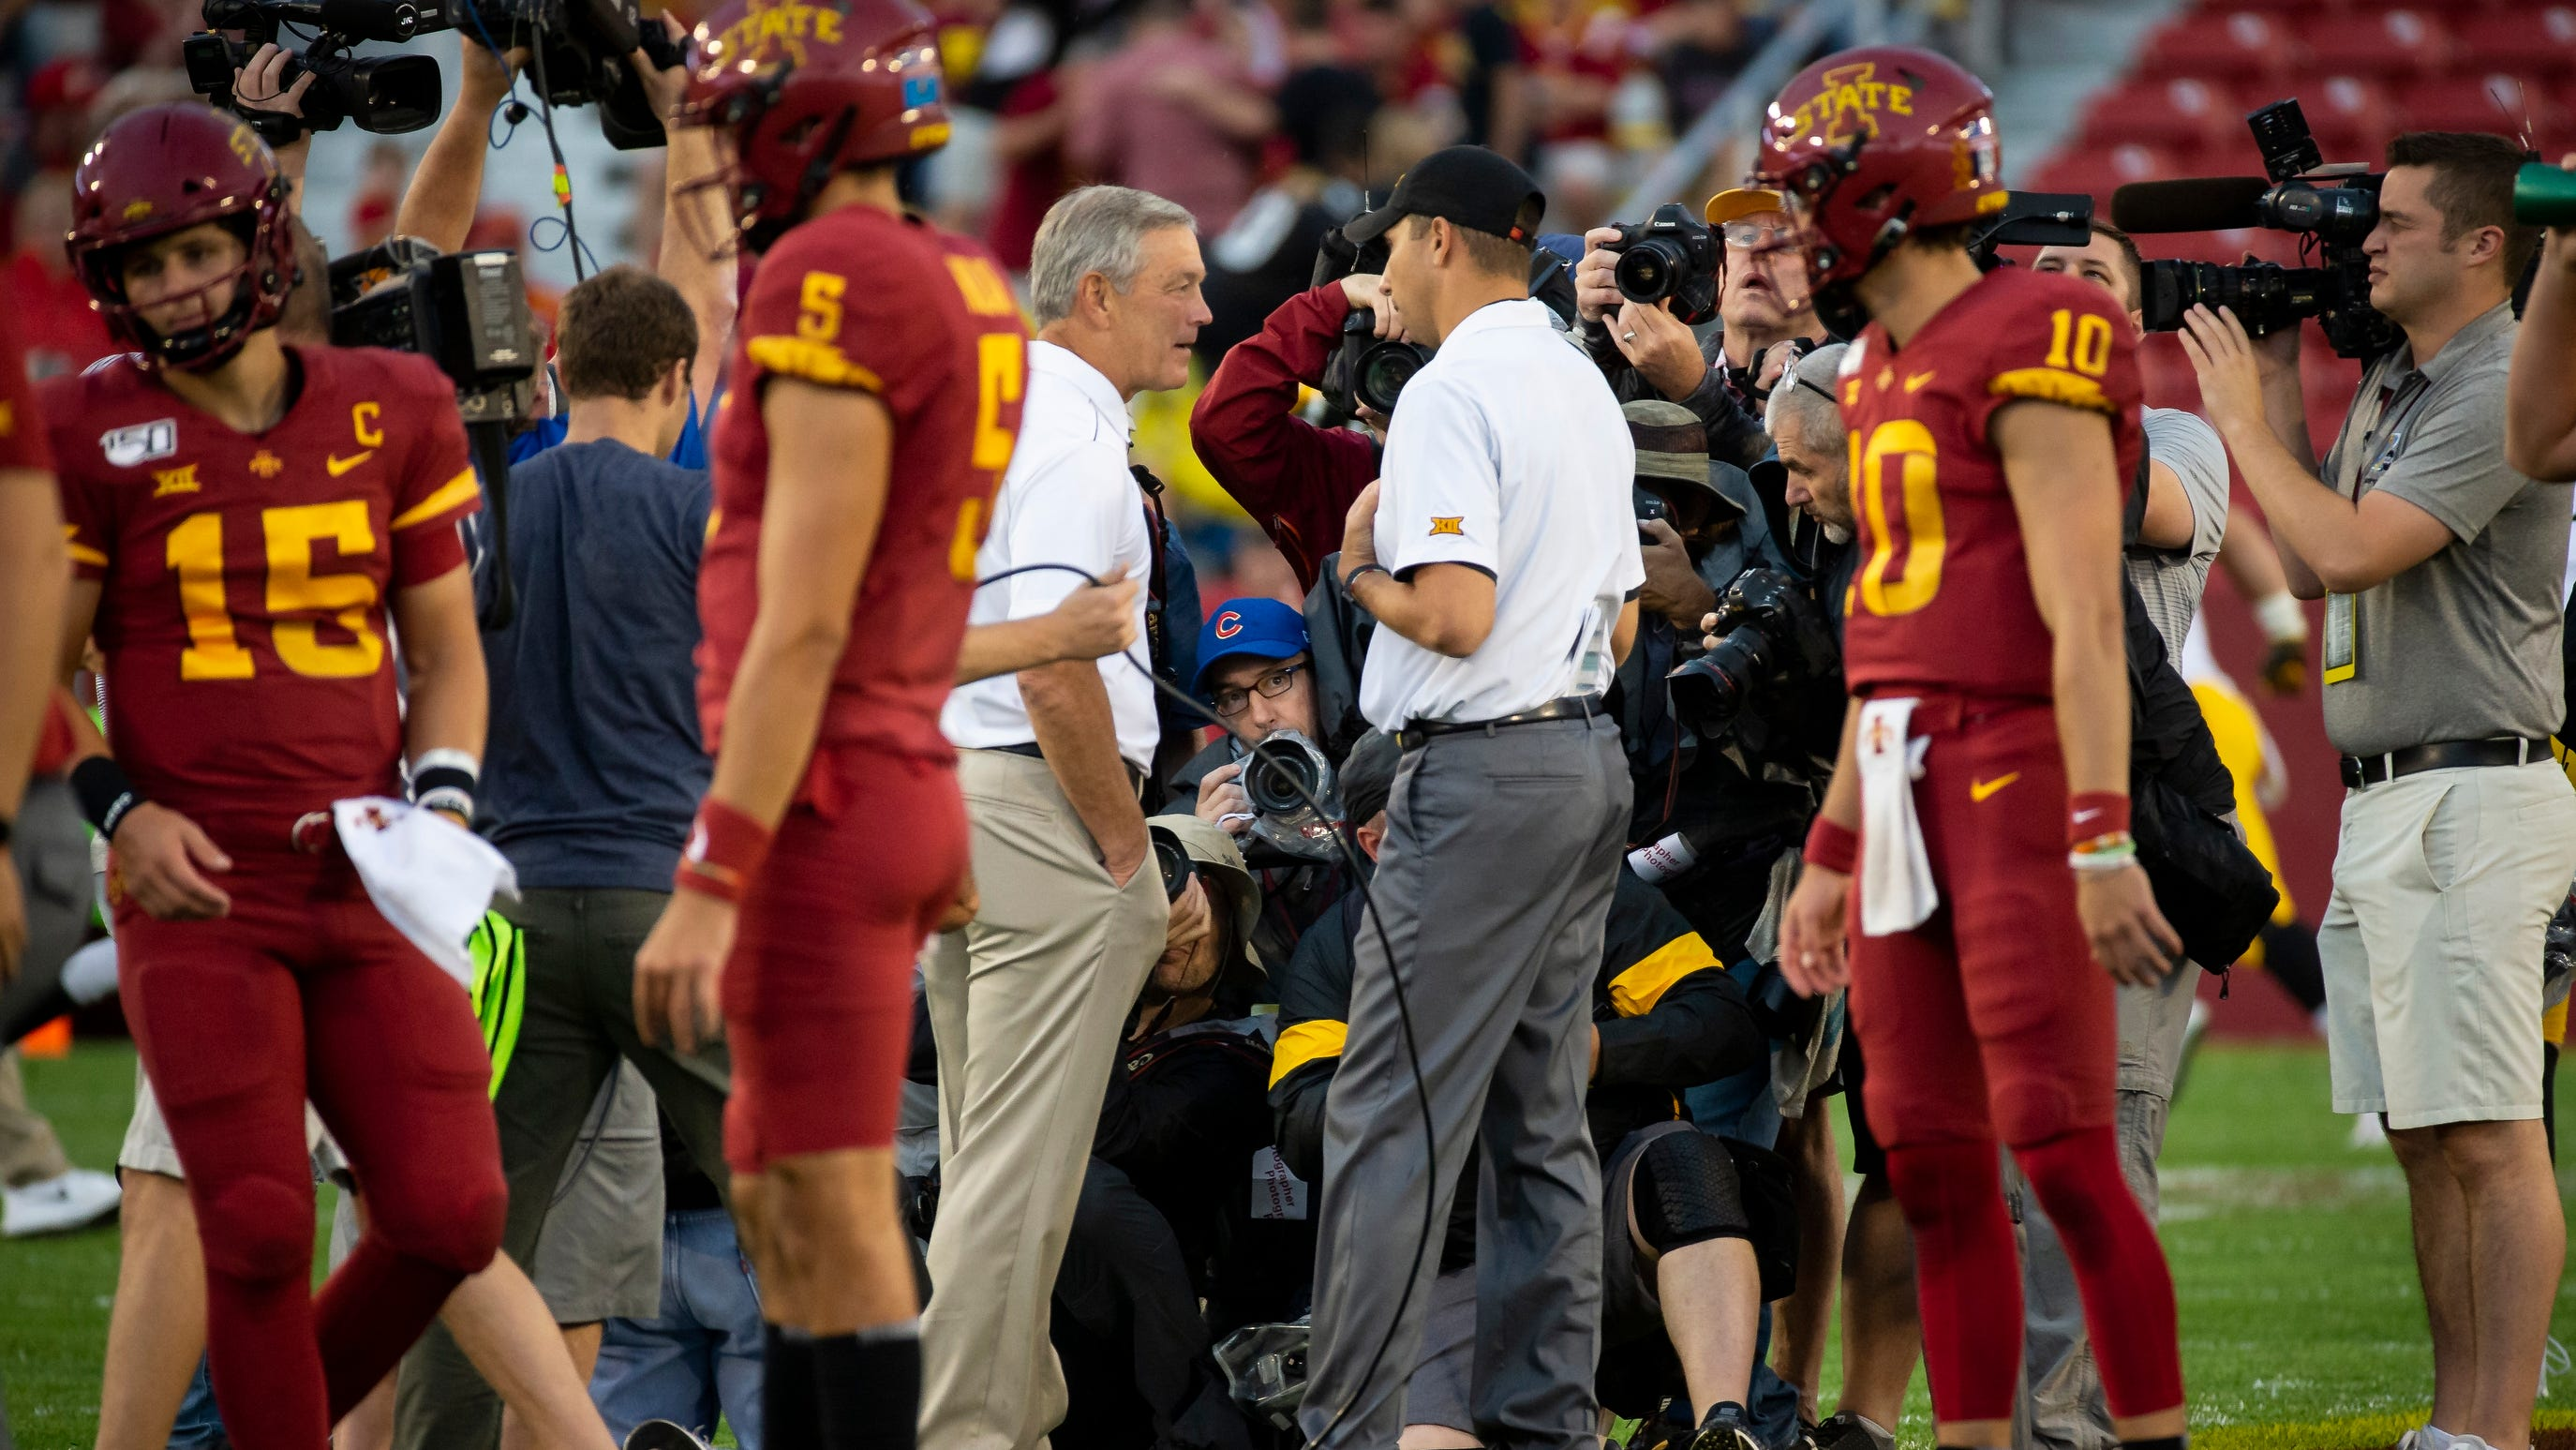 2021 Cy-Hawk football game at Jack Trice Stadium draws national television time slot